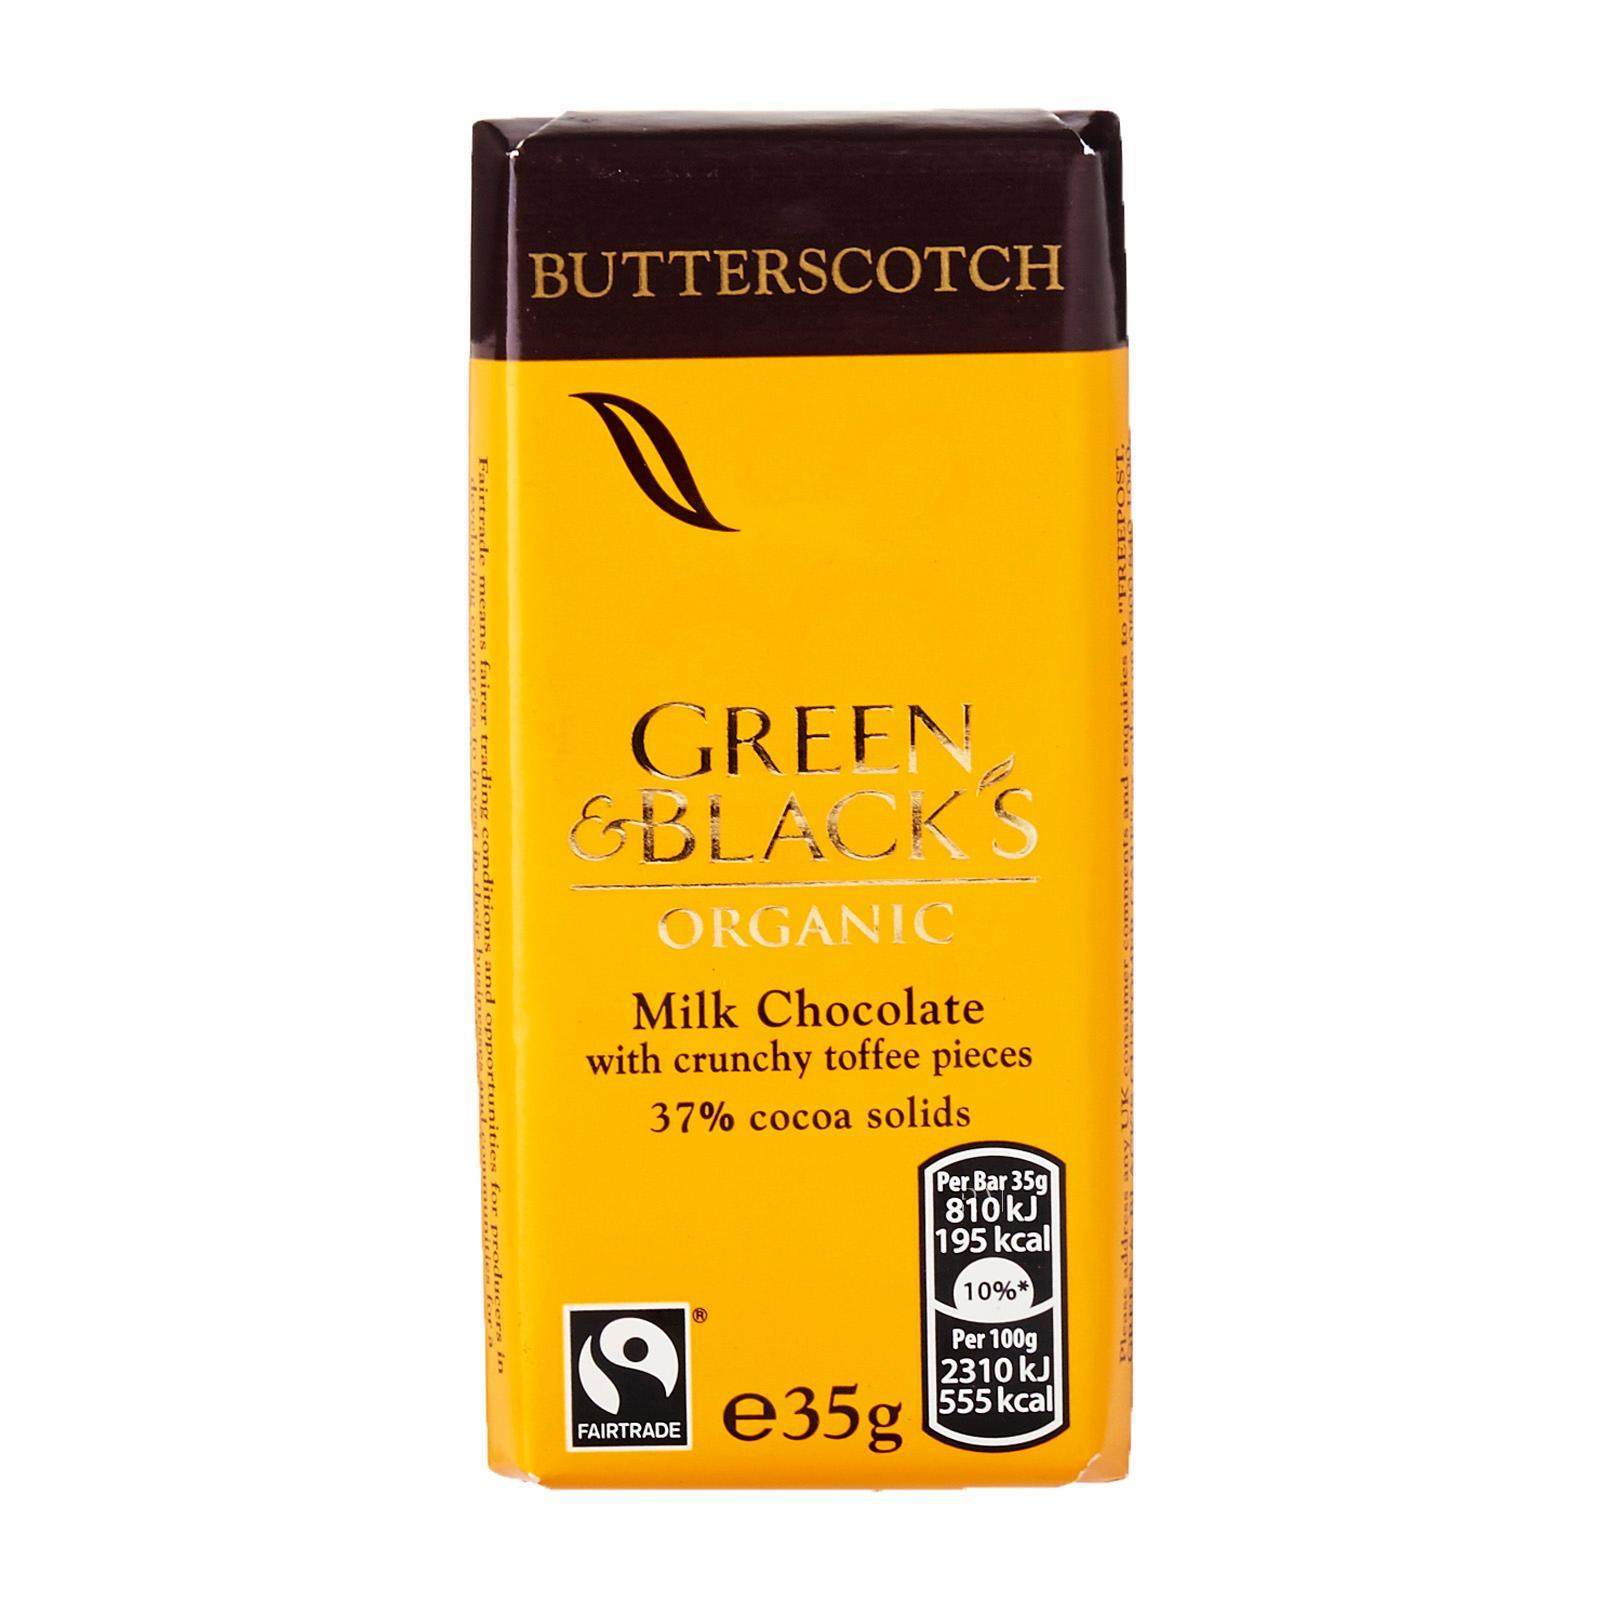 Green & Black's Organic Milk Chocolate With Butterscotch Pieces